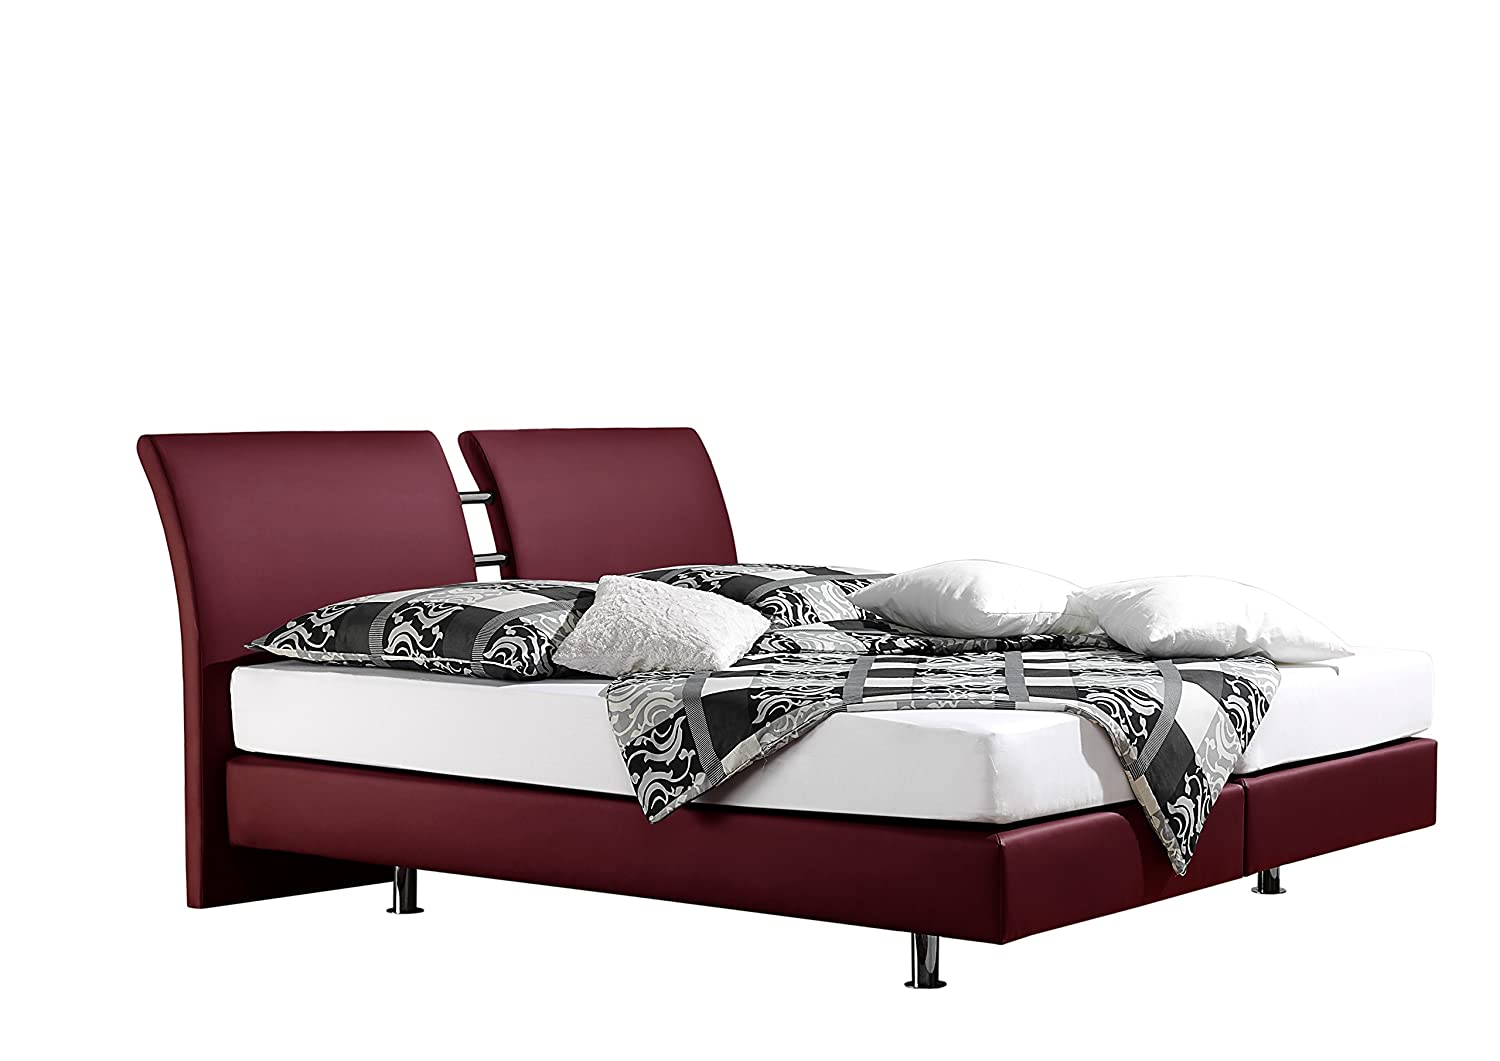 Maintal Betten 236809-4793 Boxspringbett Polo 160 x 200 cm, kunstleder bordeaux